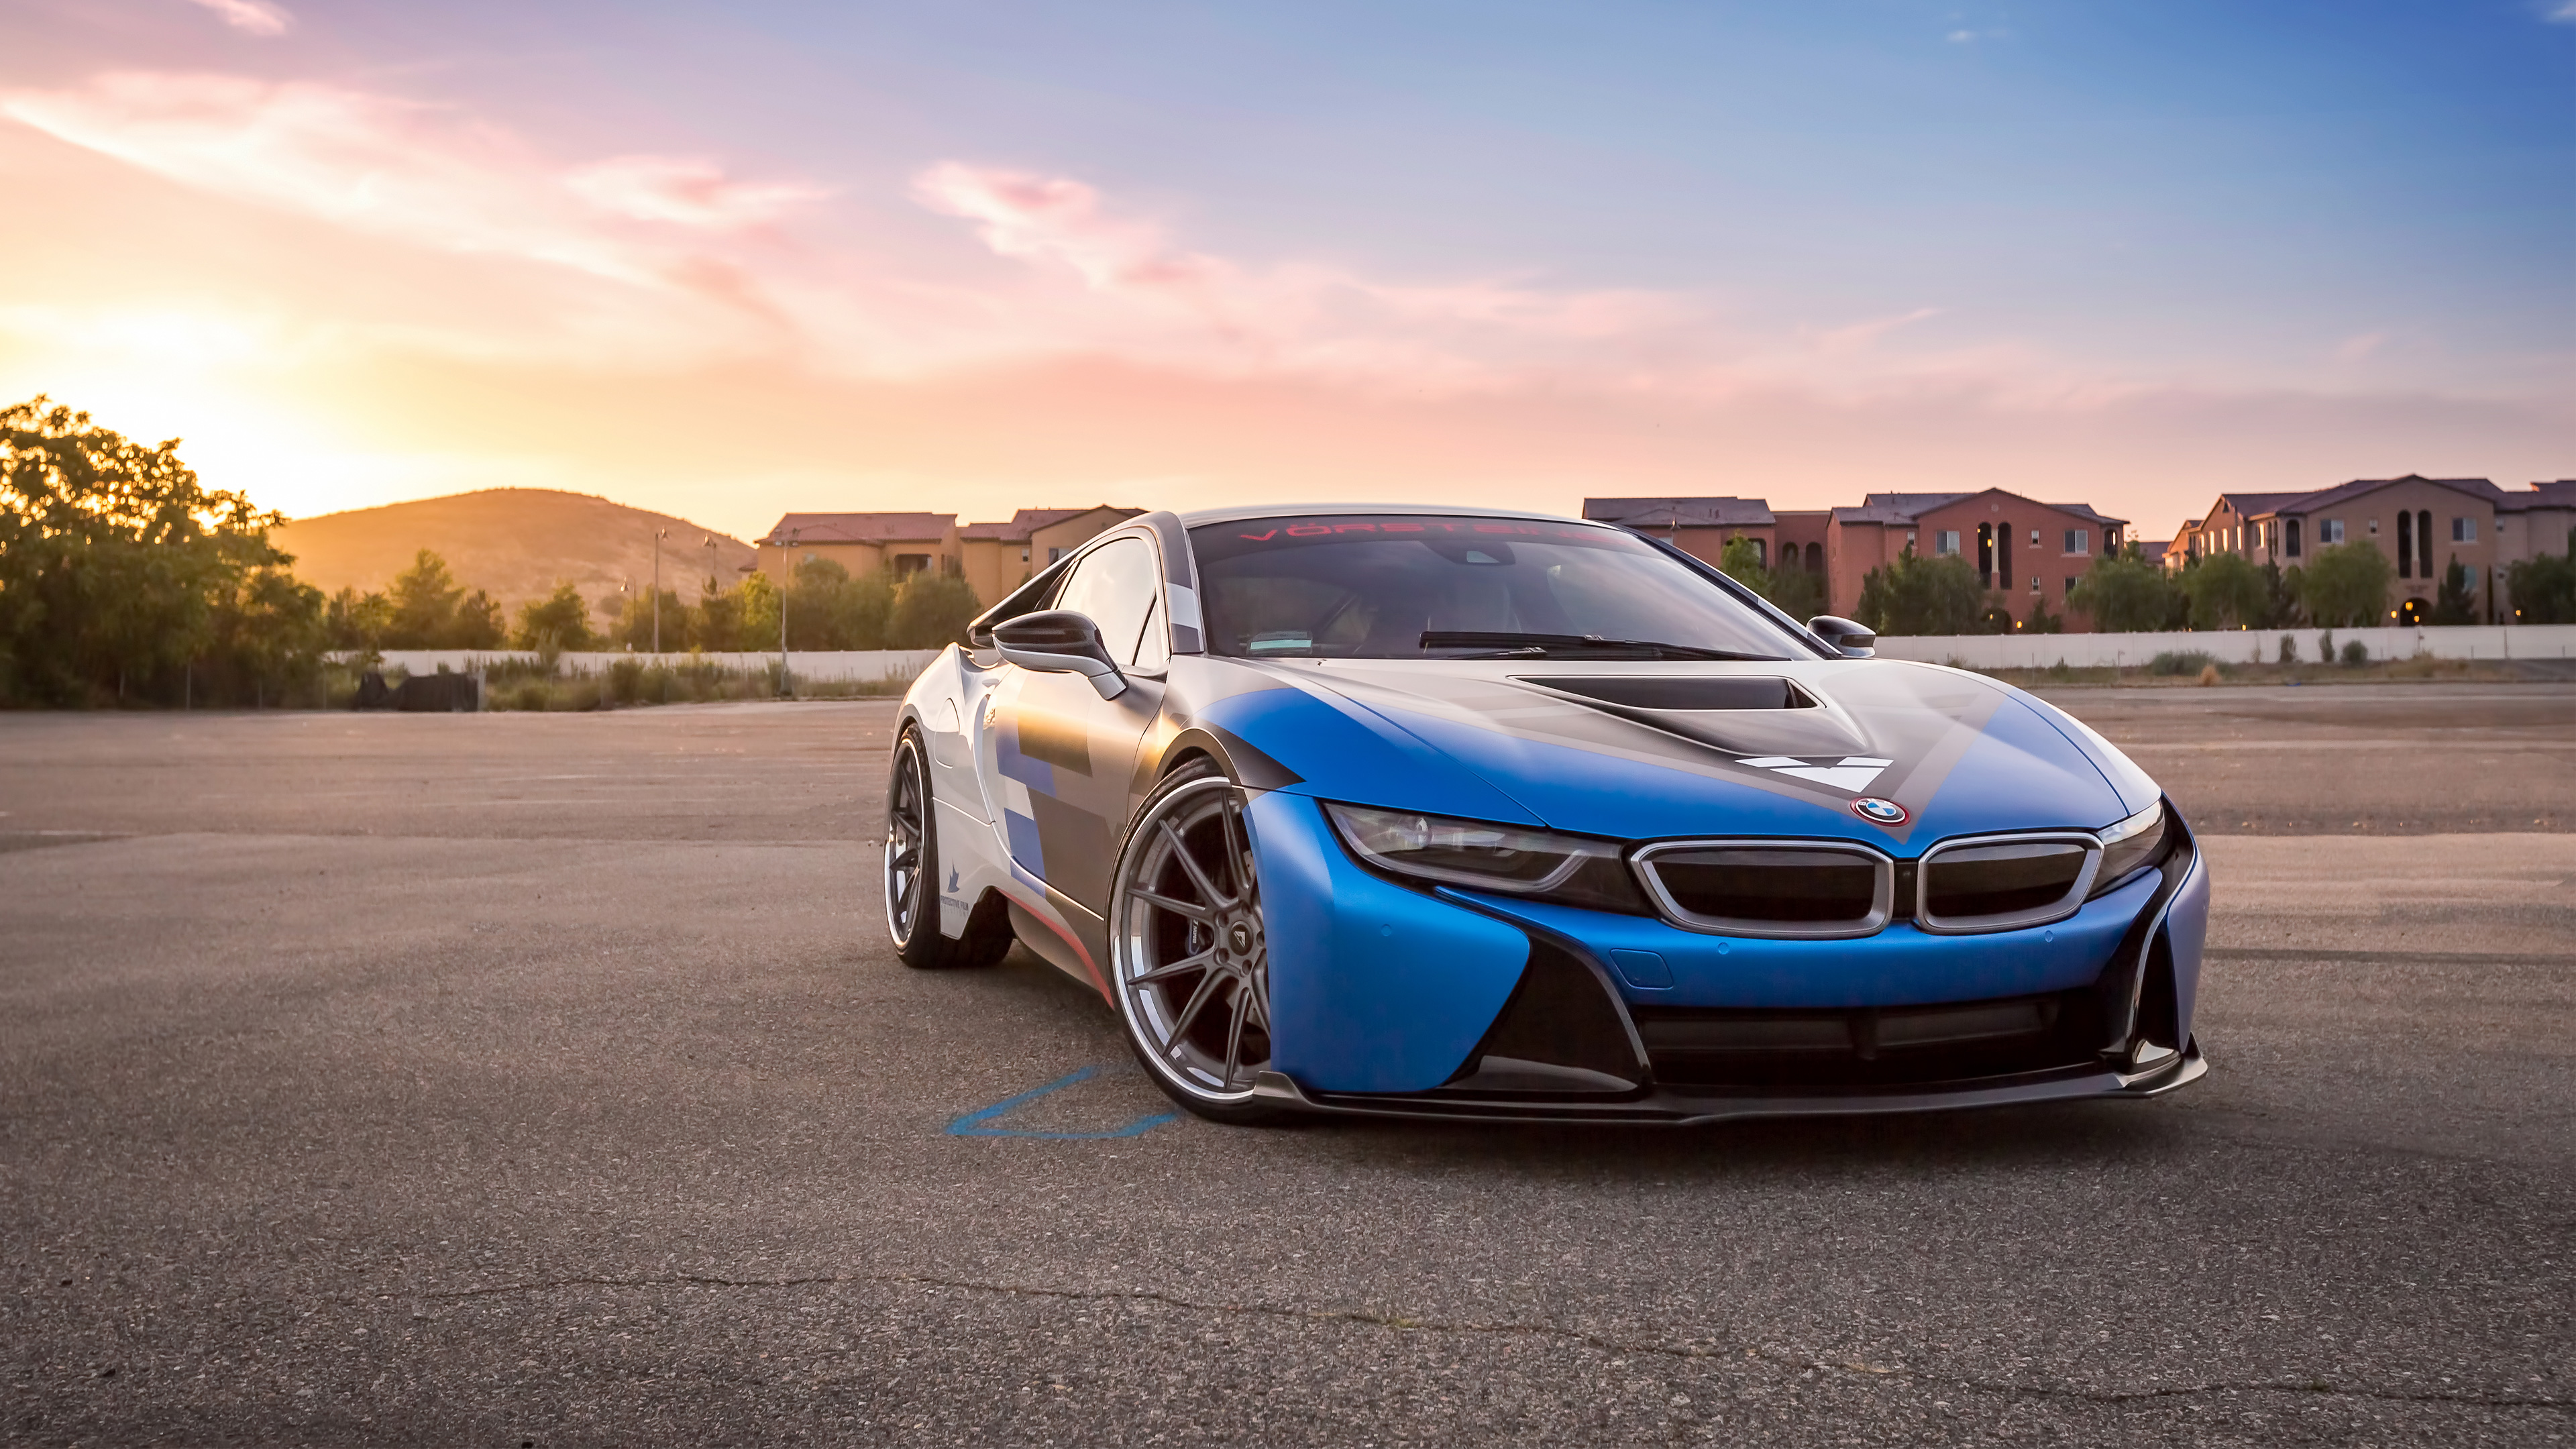 Awesome Tags: Vorsteiner. Description: Download Vorsteiner BMW I8 ...